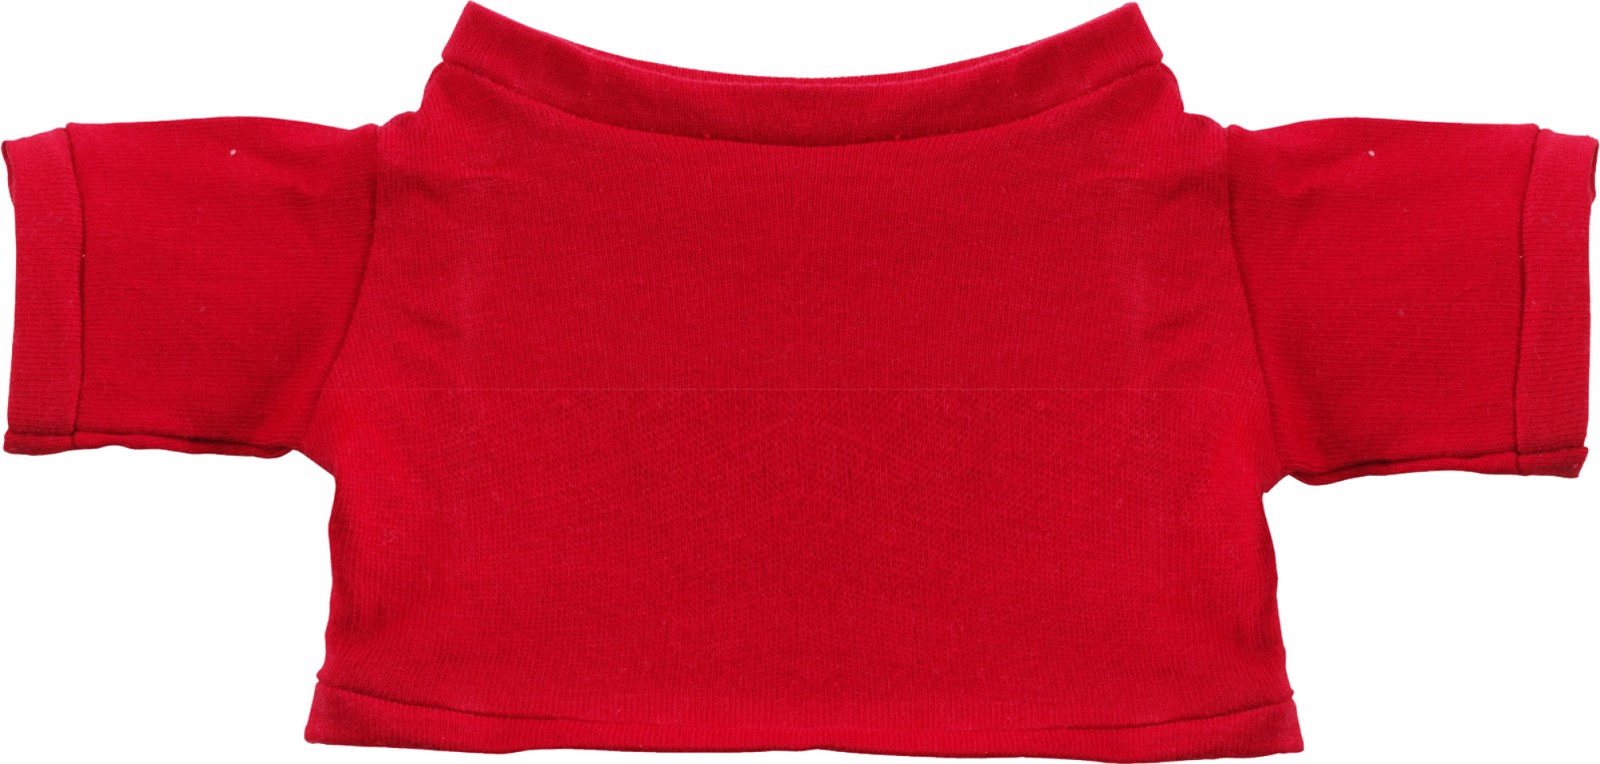 Cotton toy T-shirt - Red